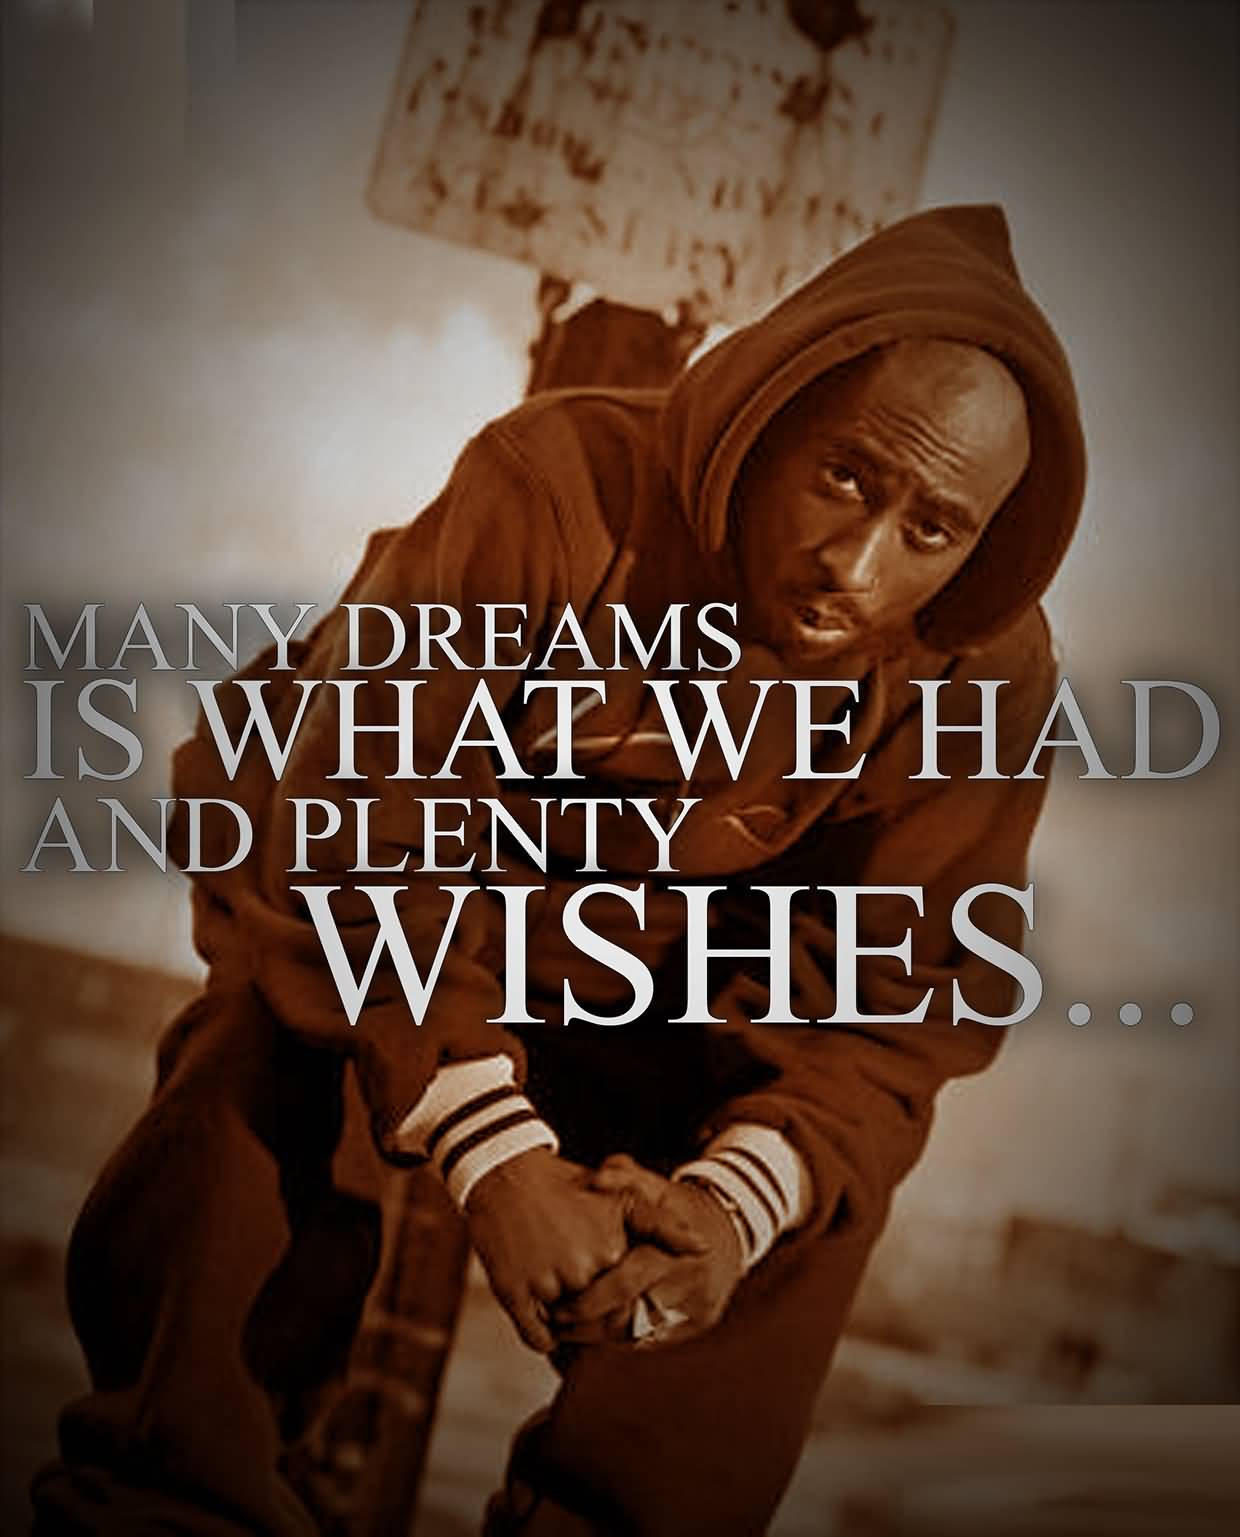 Many dreams is what we had and plenty wishes